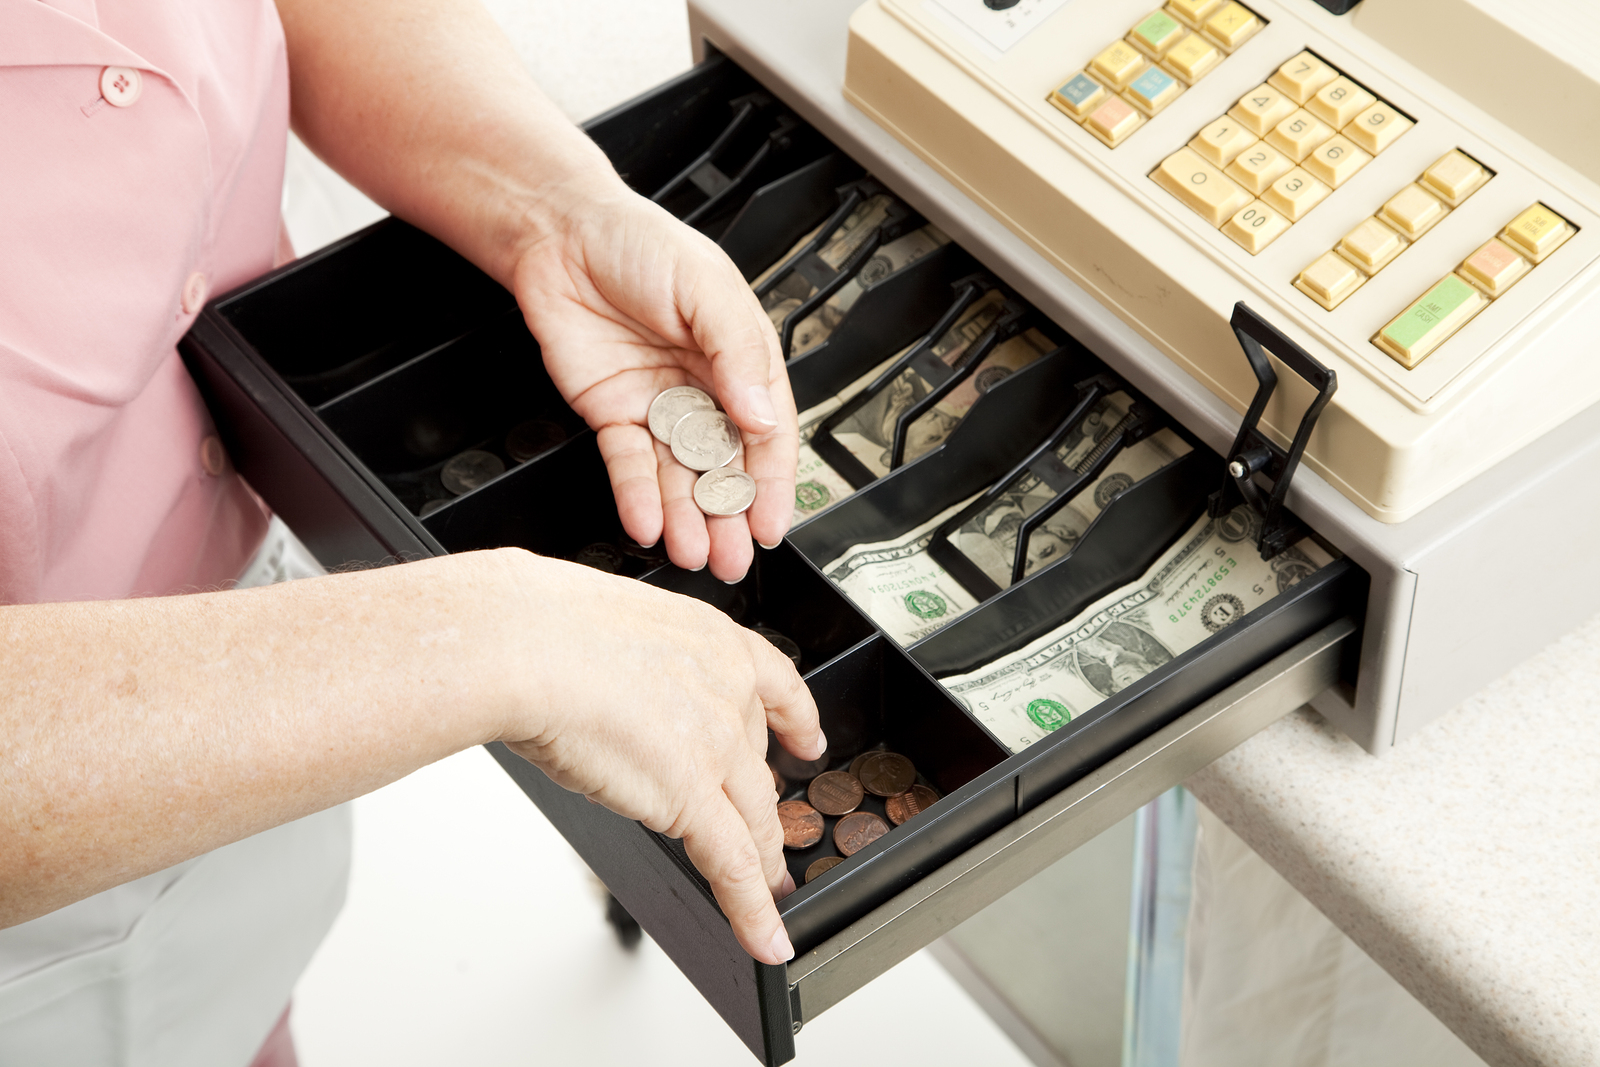 A cashier counting change out of a cash till.